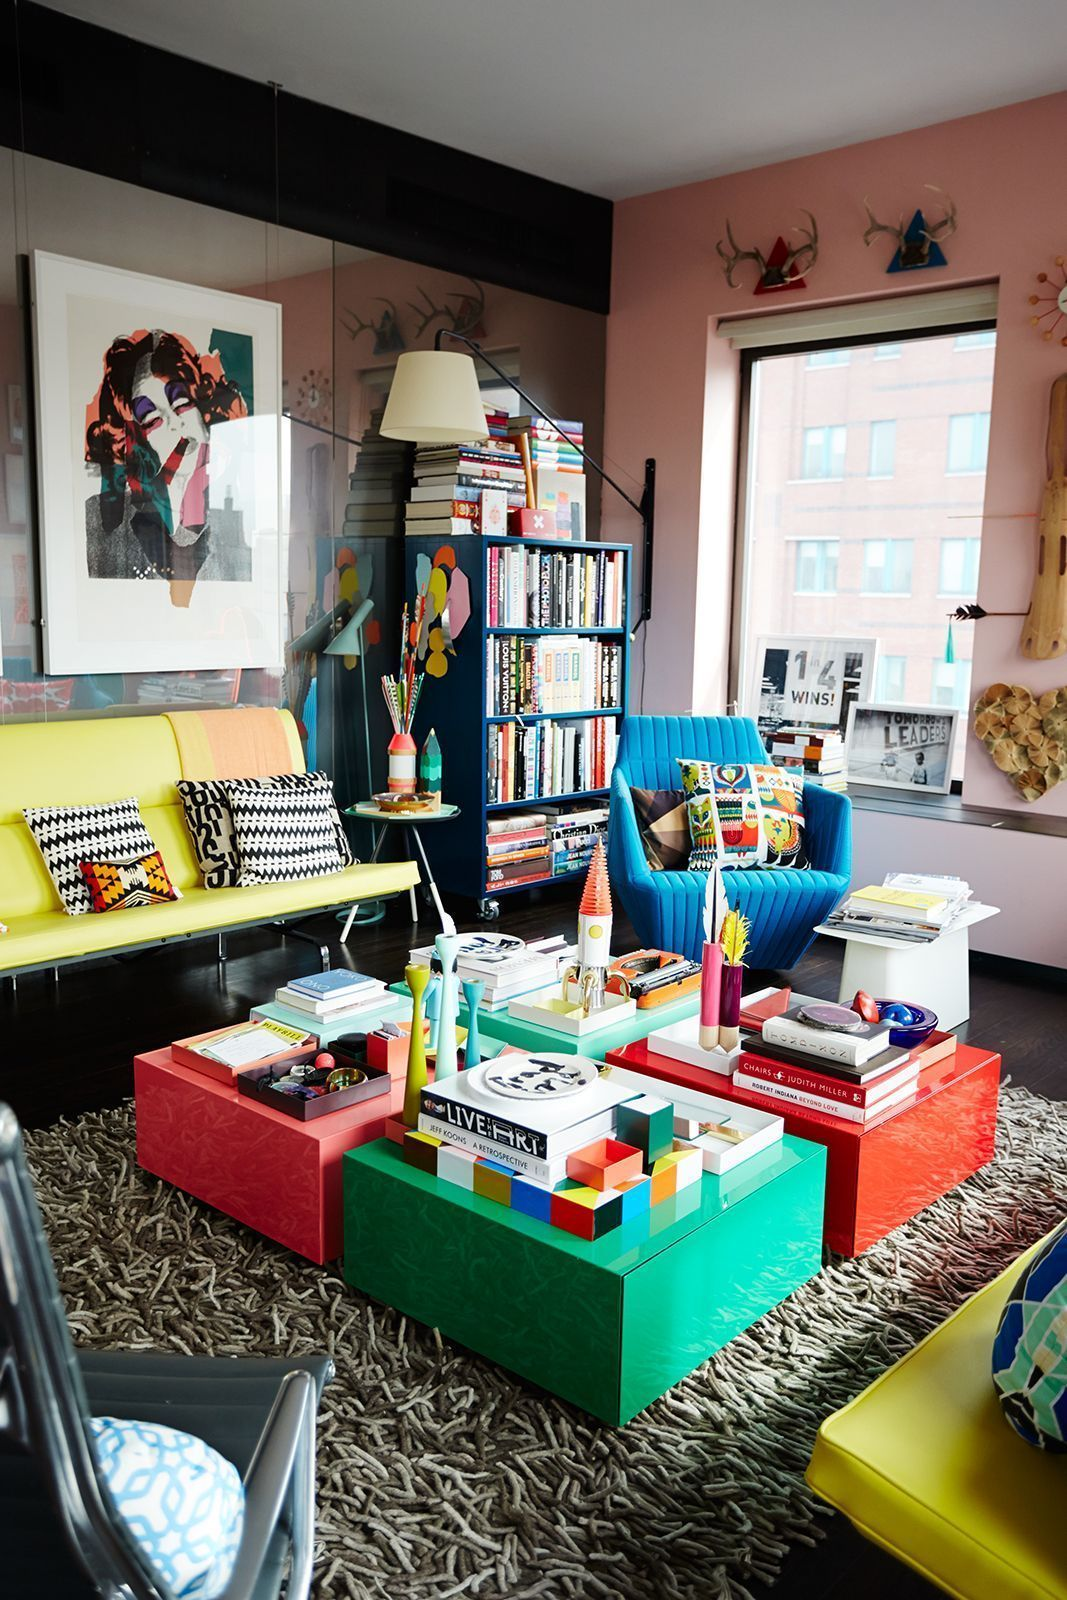 The Bright Colors Used In The Coffee Tables And The Couches Make